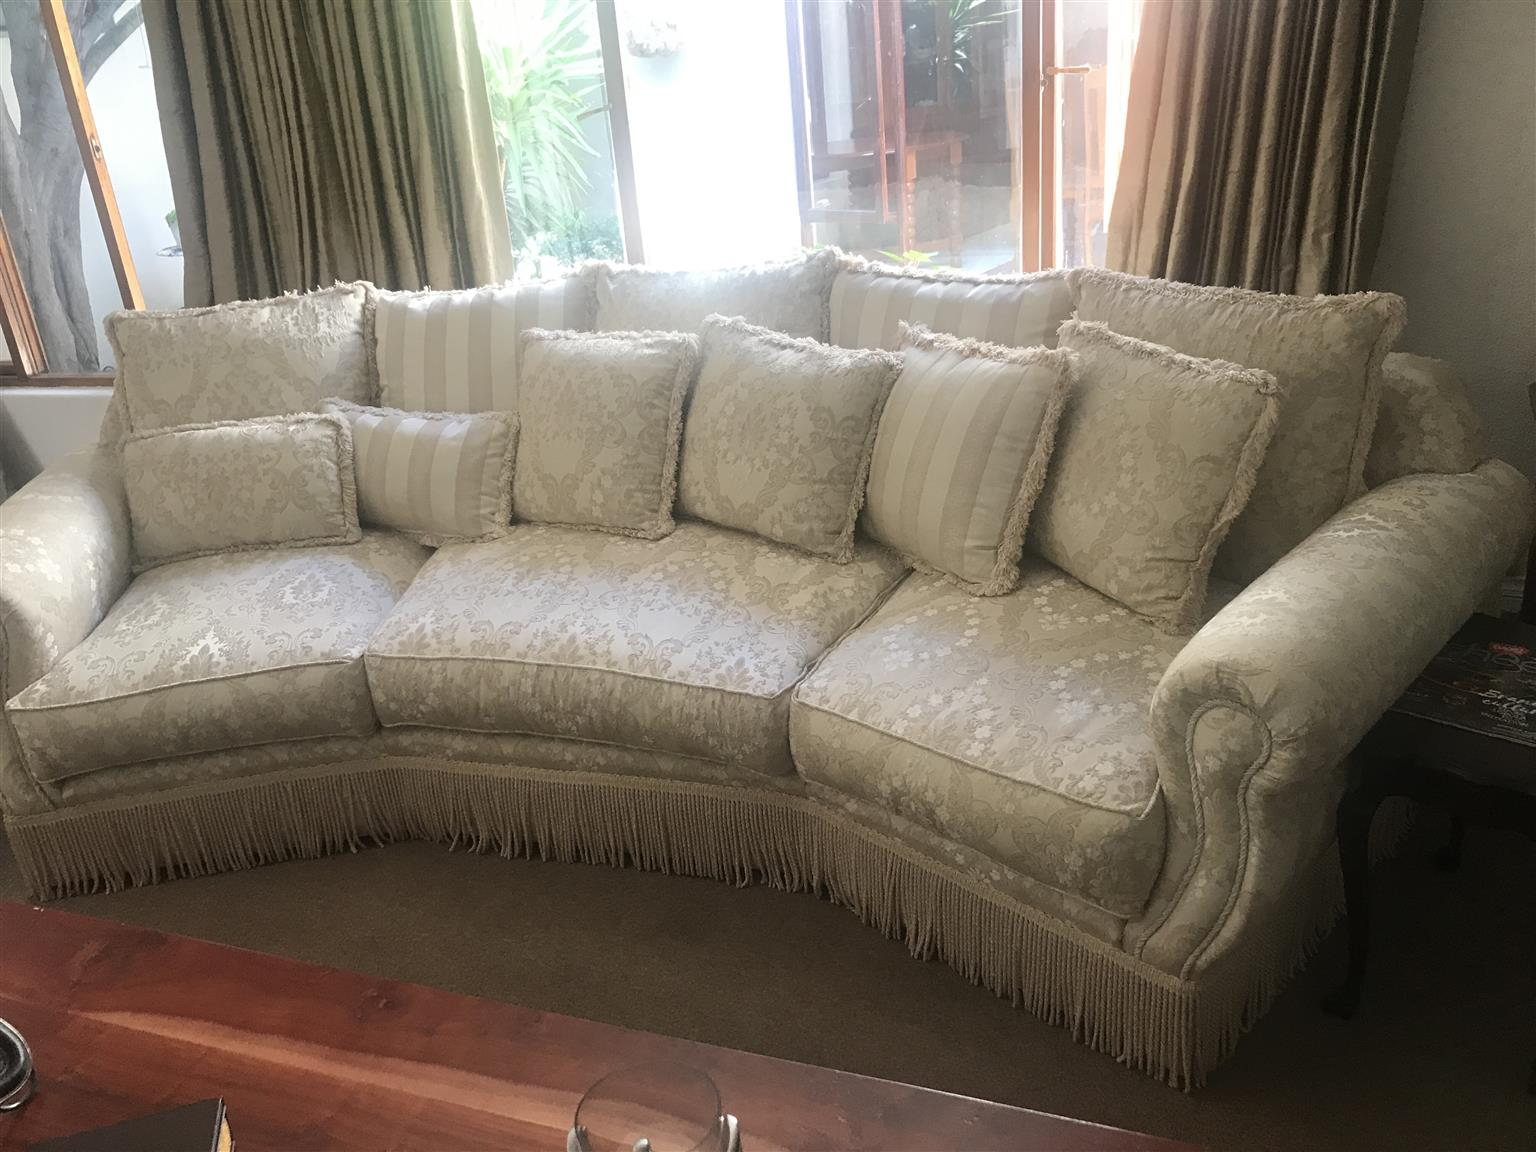 Bakos Brothers Grand Duchess Sofa's